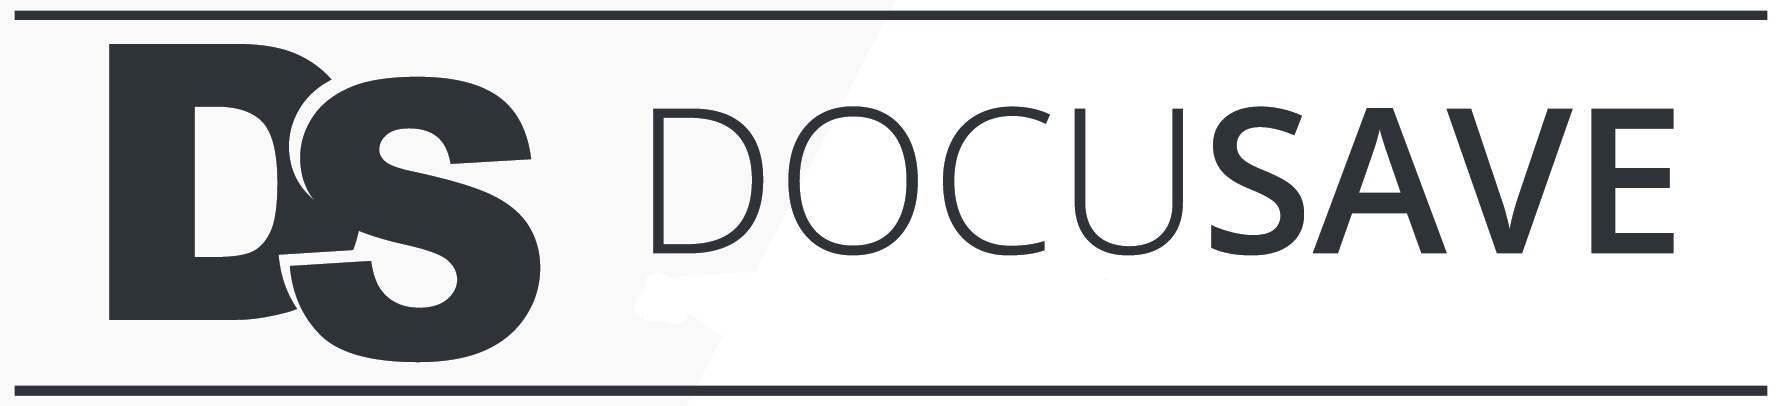 DocuSave